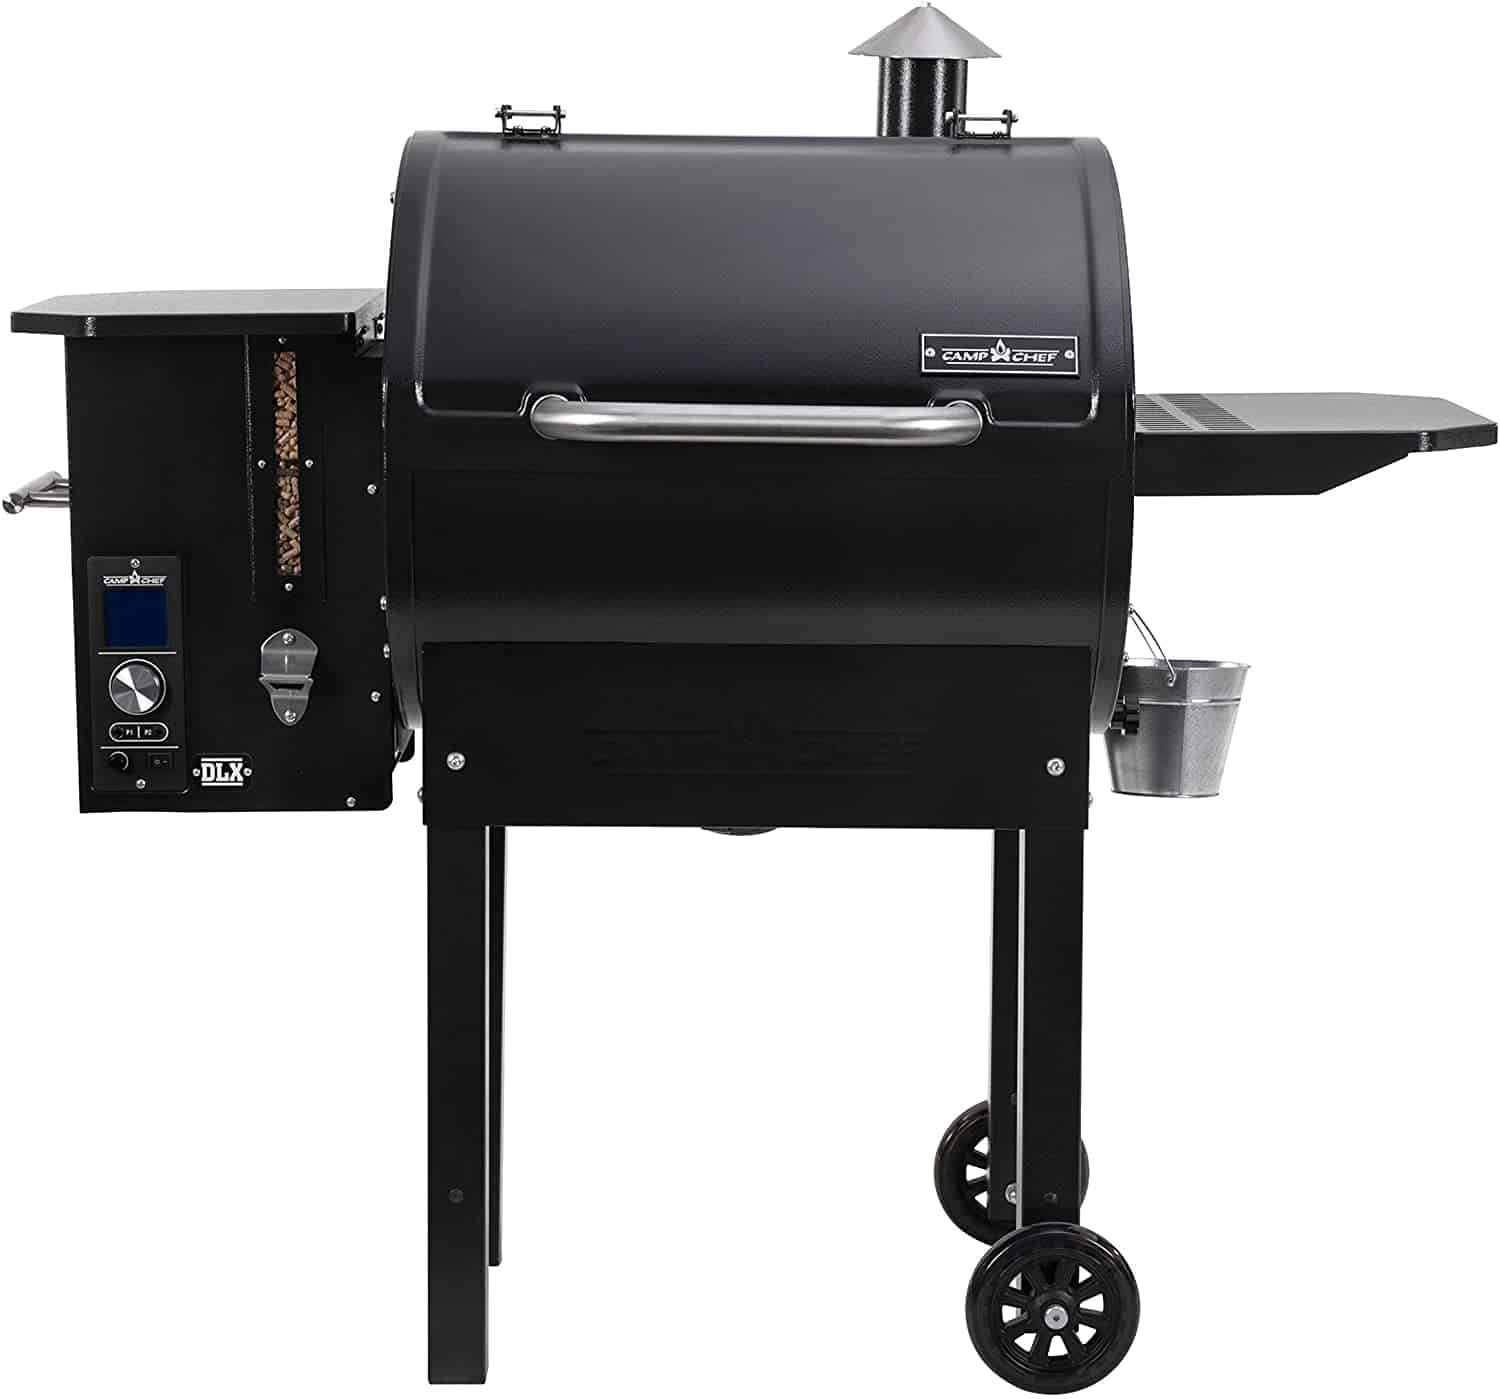 Pellet grill with best digital temperature control: Camp Chef SmokePro DLX PG24